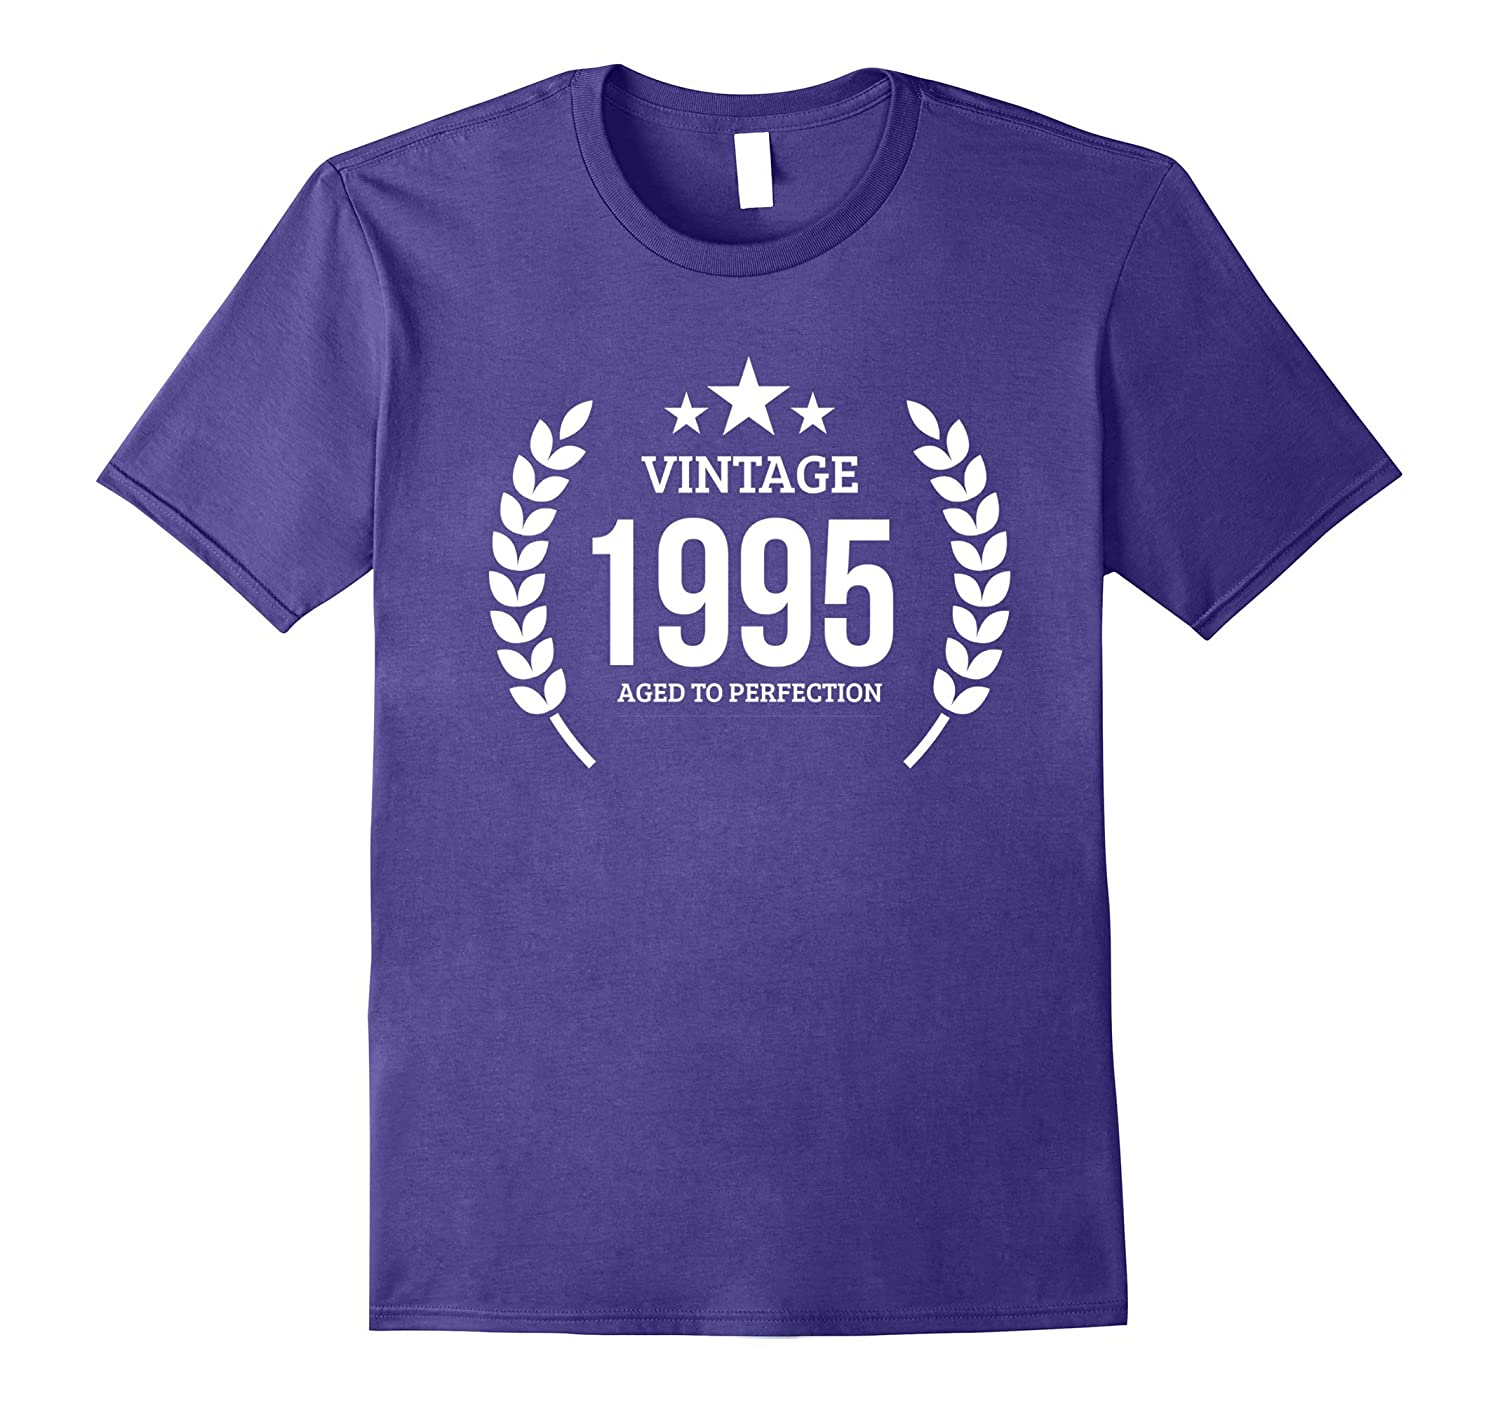 Born In 1995 Shirt 22 Year Old Birthday Gift Him Her 22nd Rose Rosetshirt